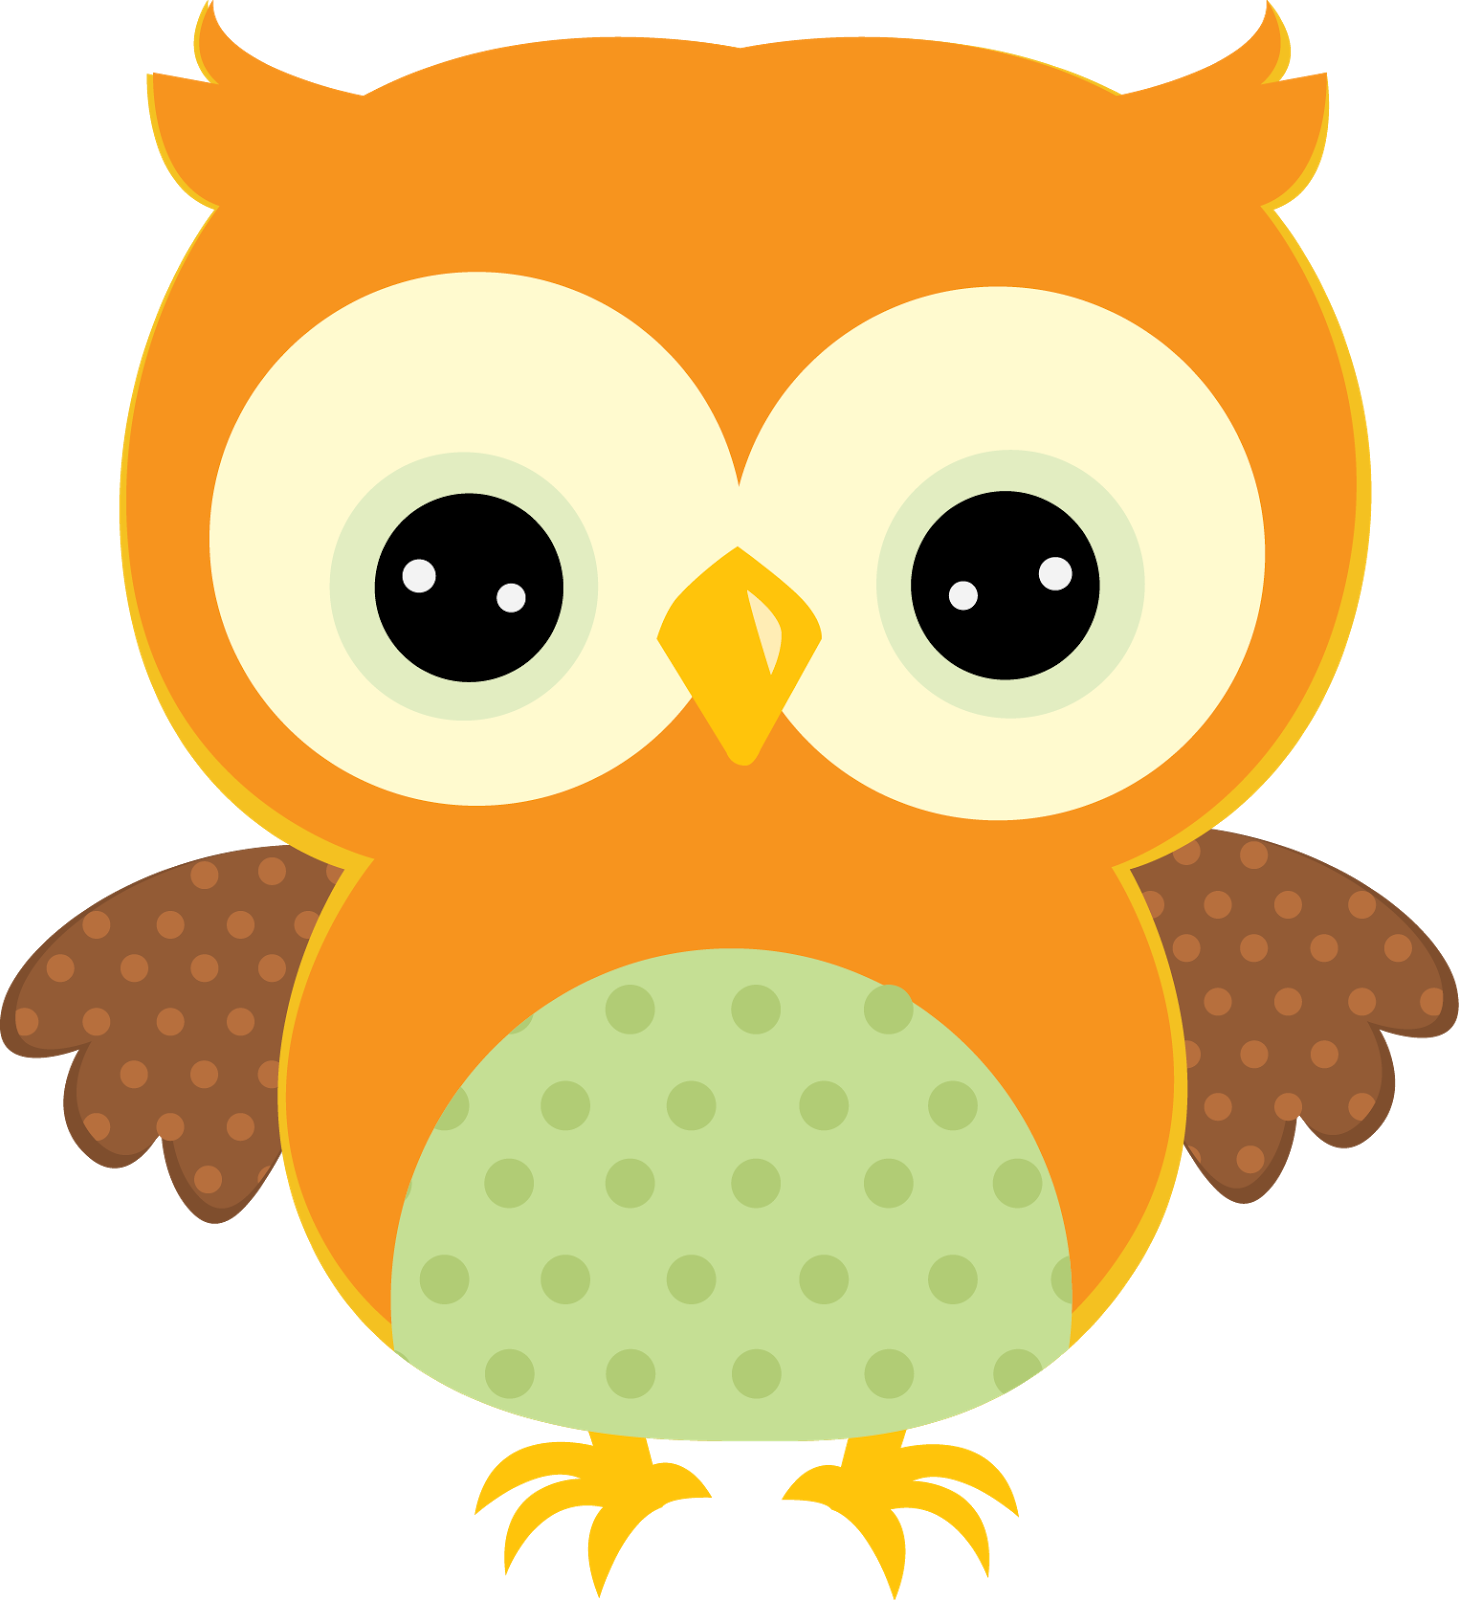 owl clipart at getdrawings com free for personal use owl clipart rh getdrawings com free clipart images of owls